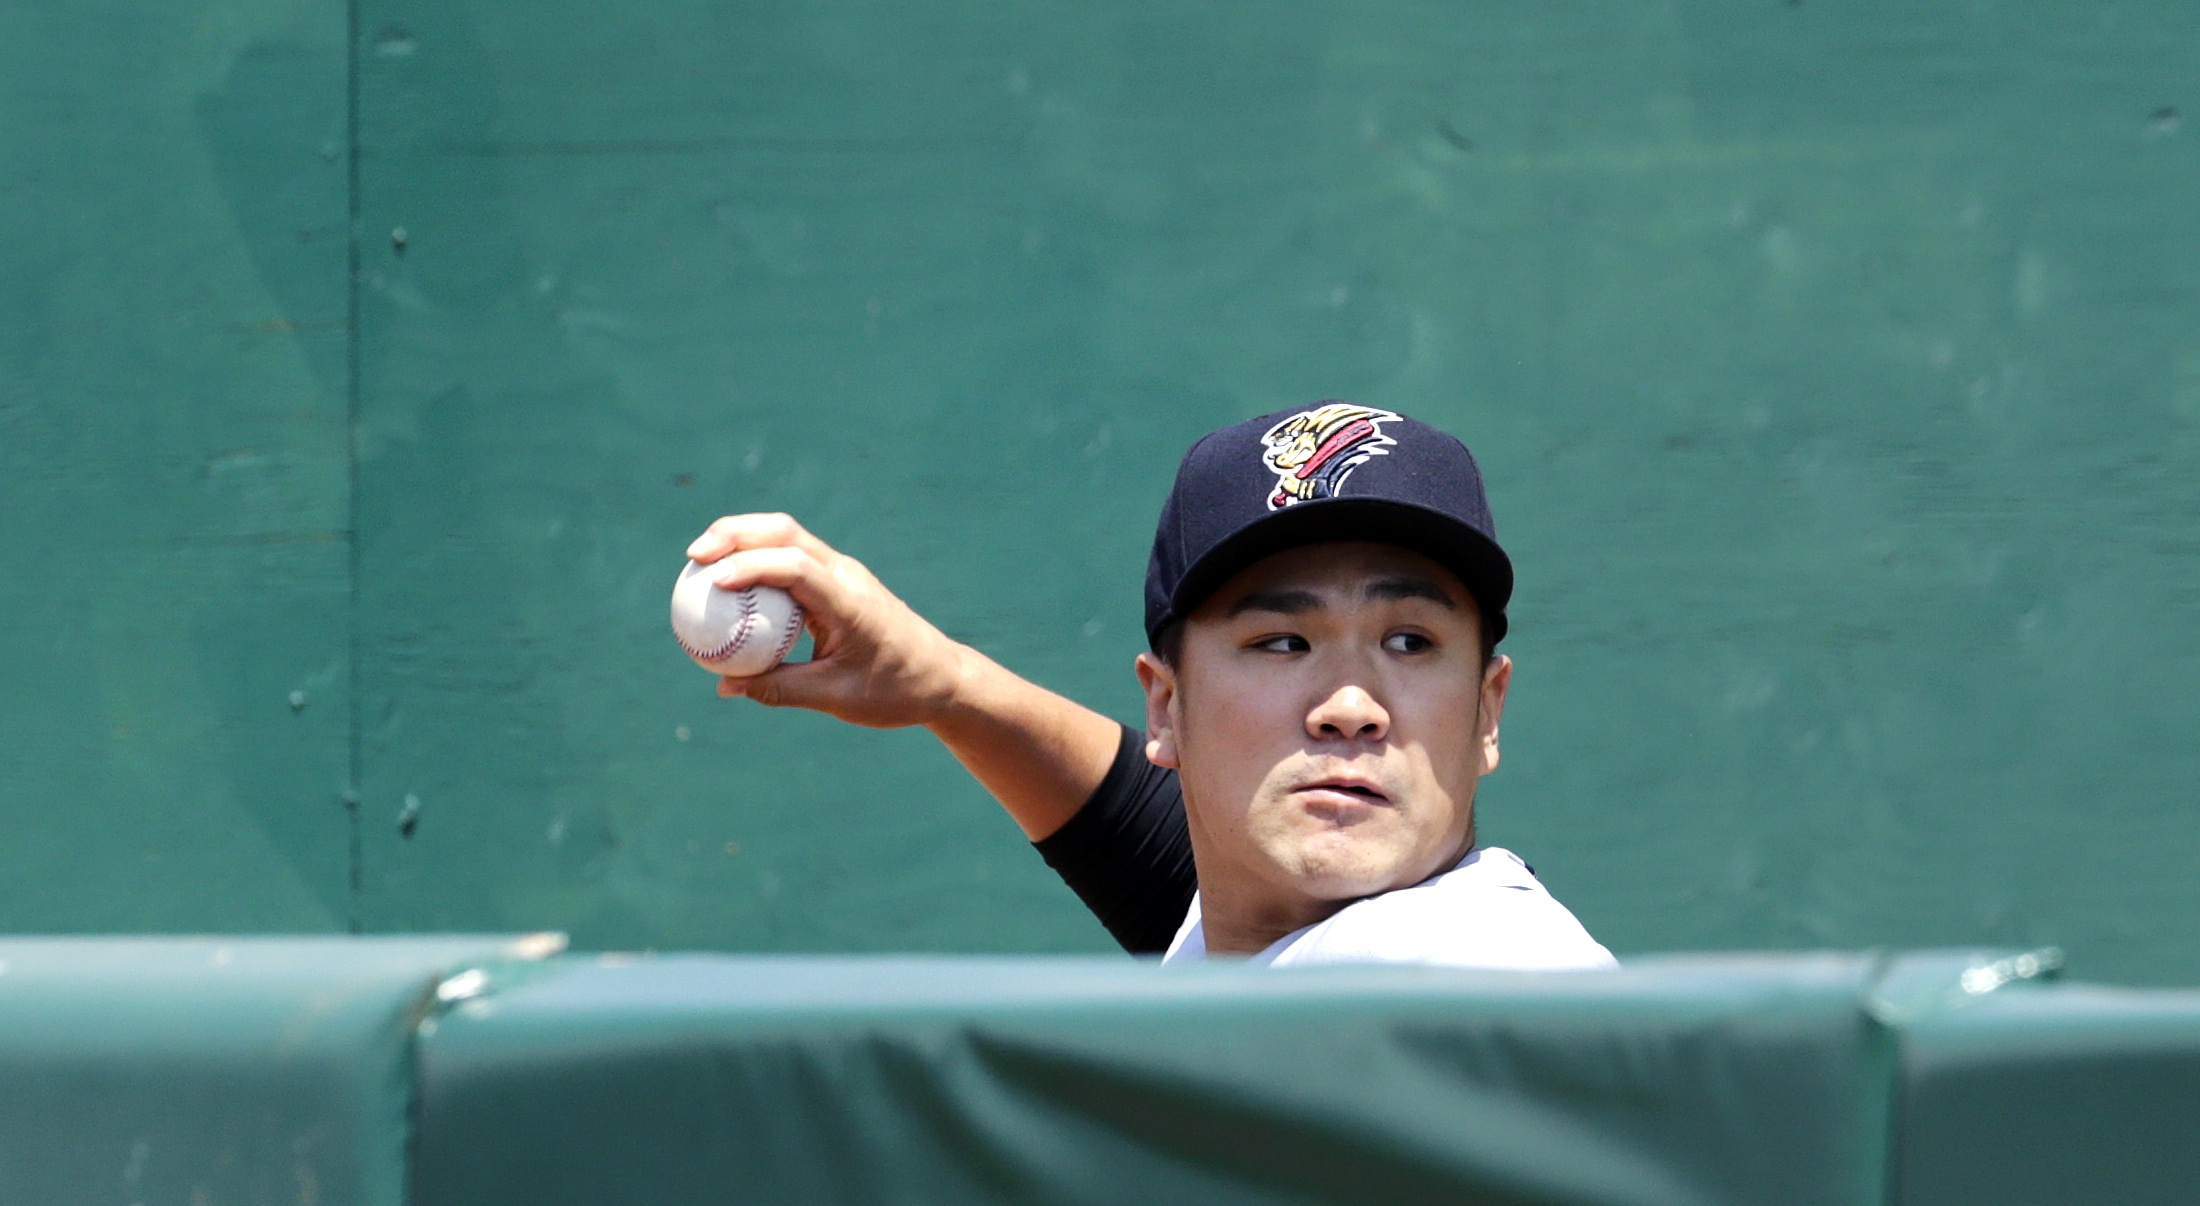 New York Yankees pitcher Masahiro Tanaka warms up in the bullpen prior to a rehab start with the Scranton/Wilkes-Barre RailRaiders against the Pawtucket Red Sox in a minor league baseball game at McCoy Stadium in Pawtucket, Rhode Island, Wednesday, May 27